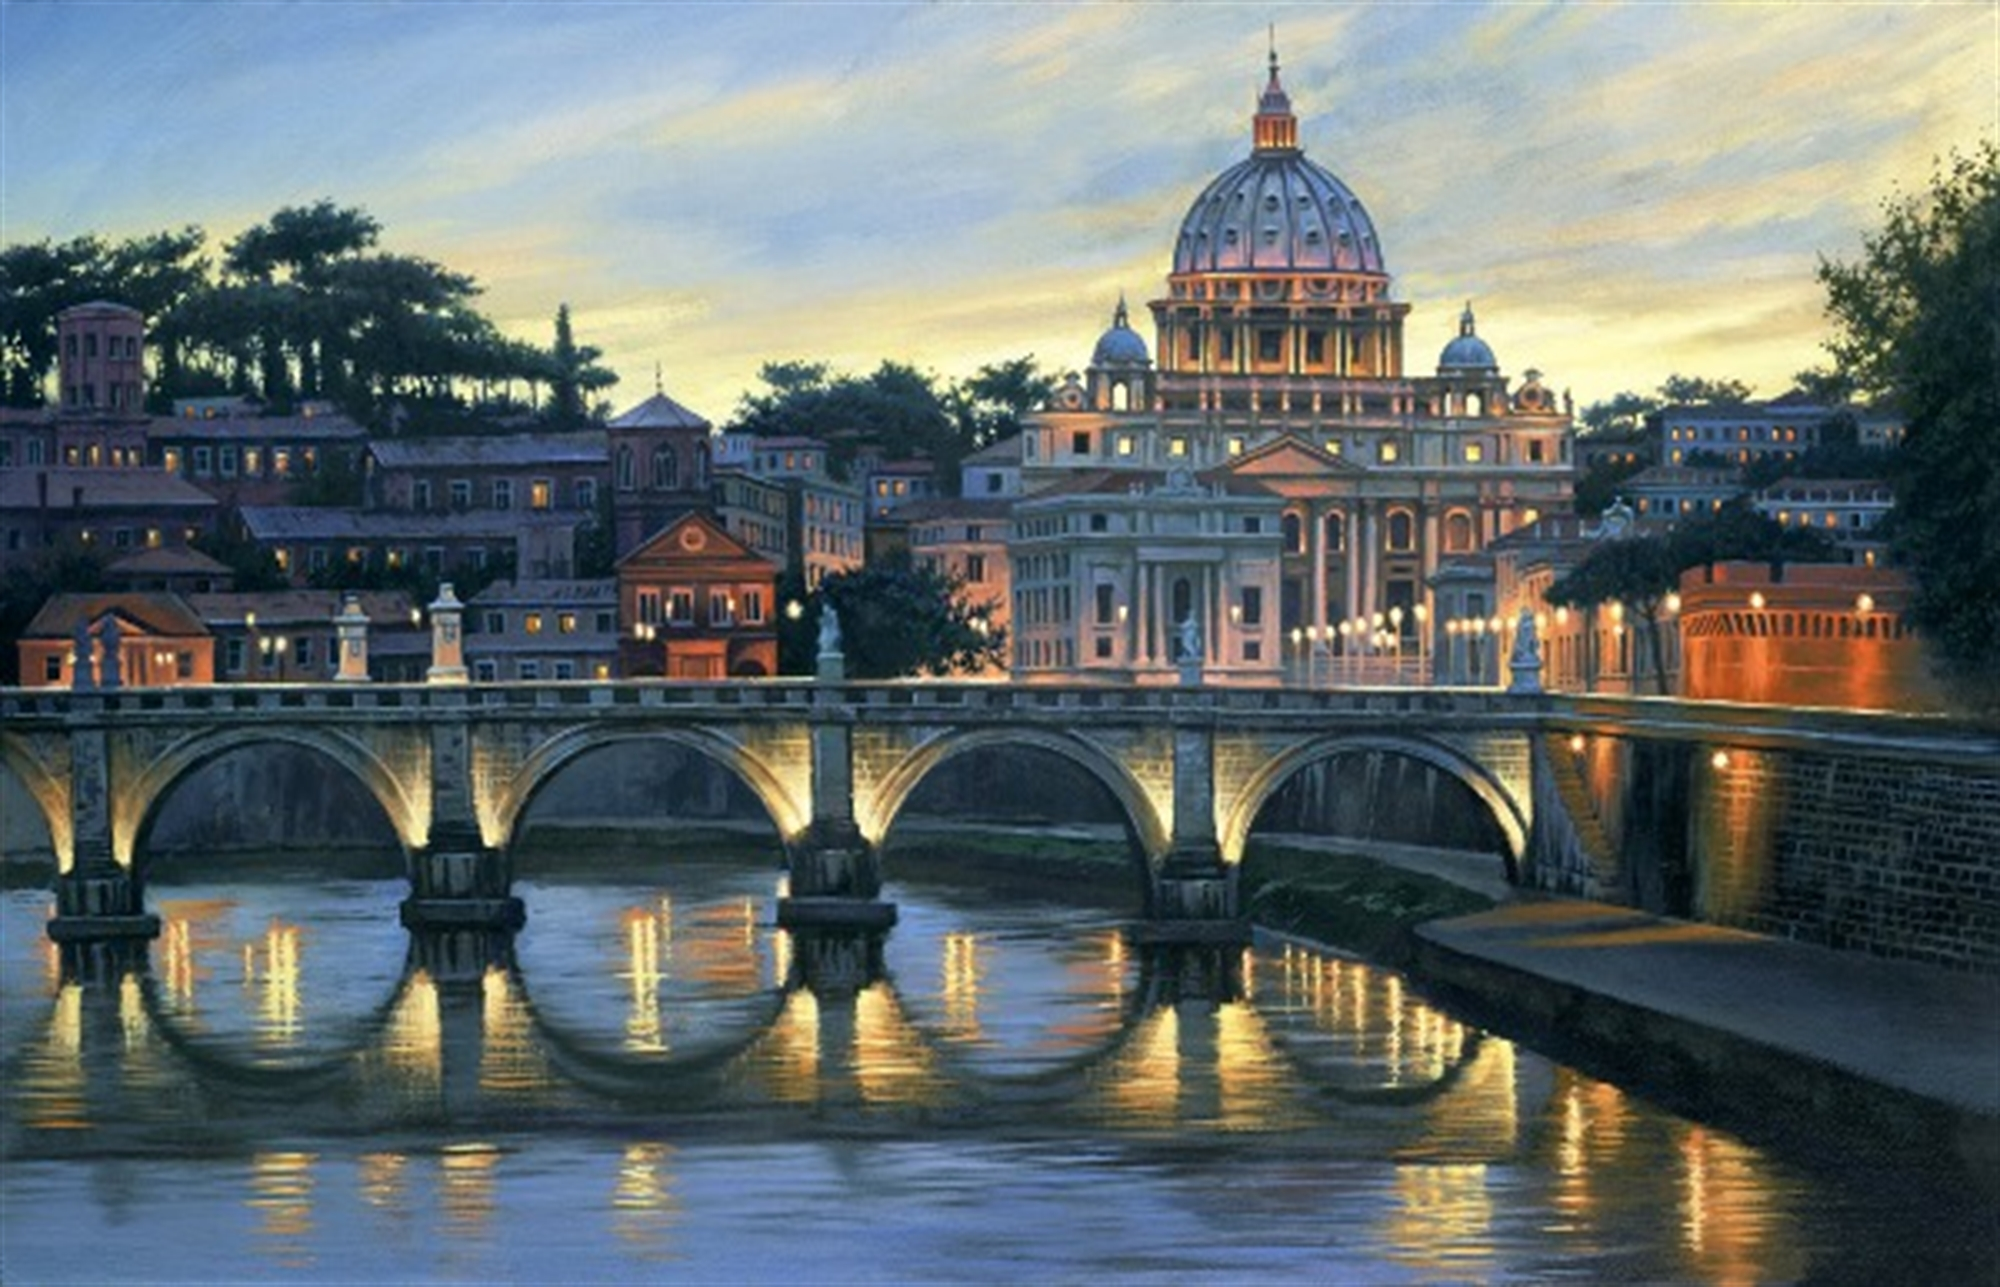 An Evening in Rome by Alexei Butirskiy